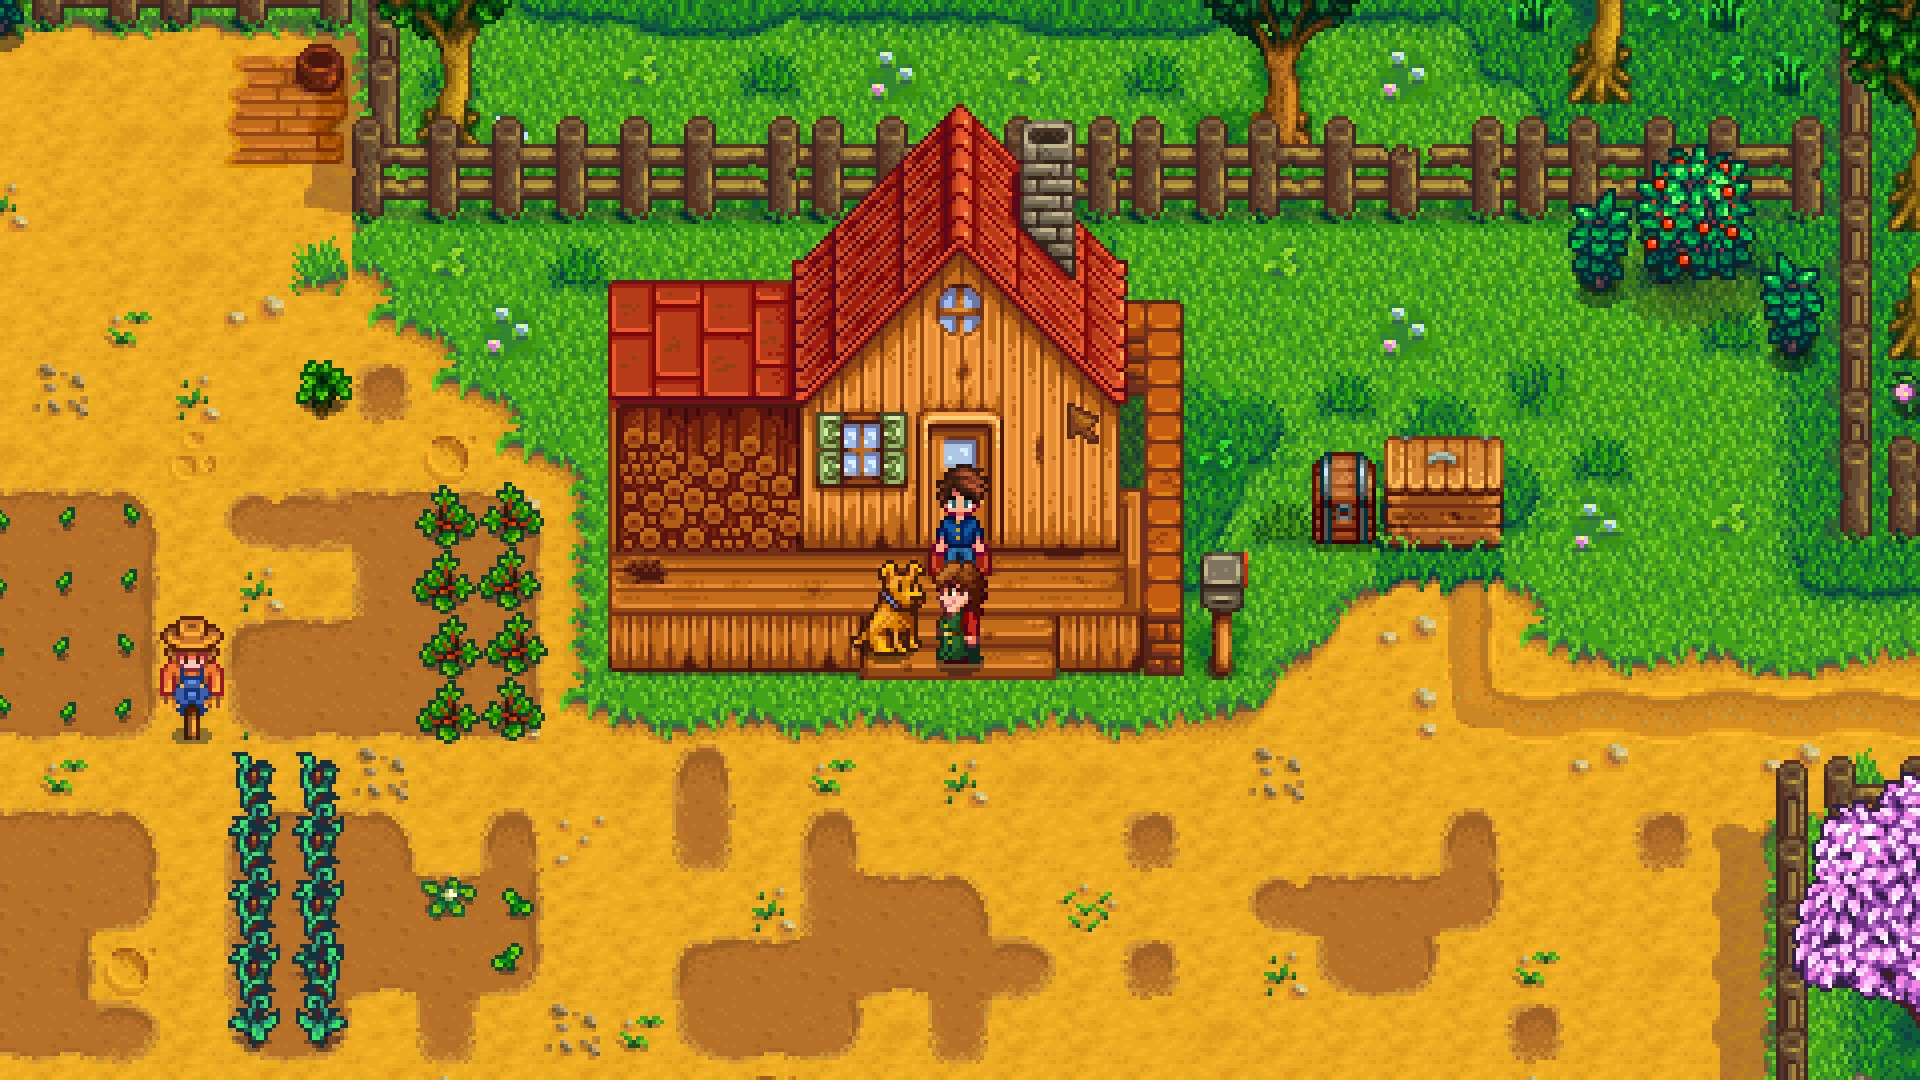 Dog house of green valley - Use The Pickaxe To Clear Tilled Soil And Crafted Items